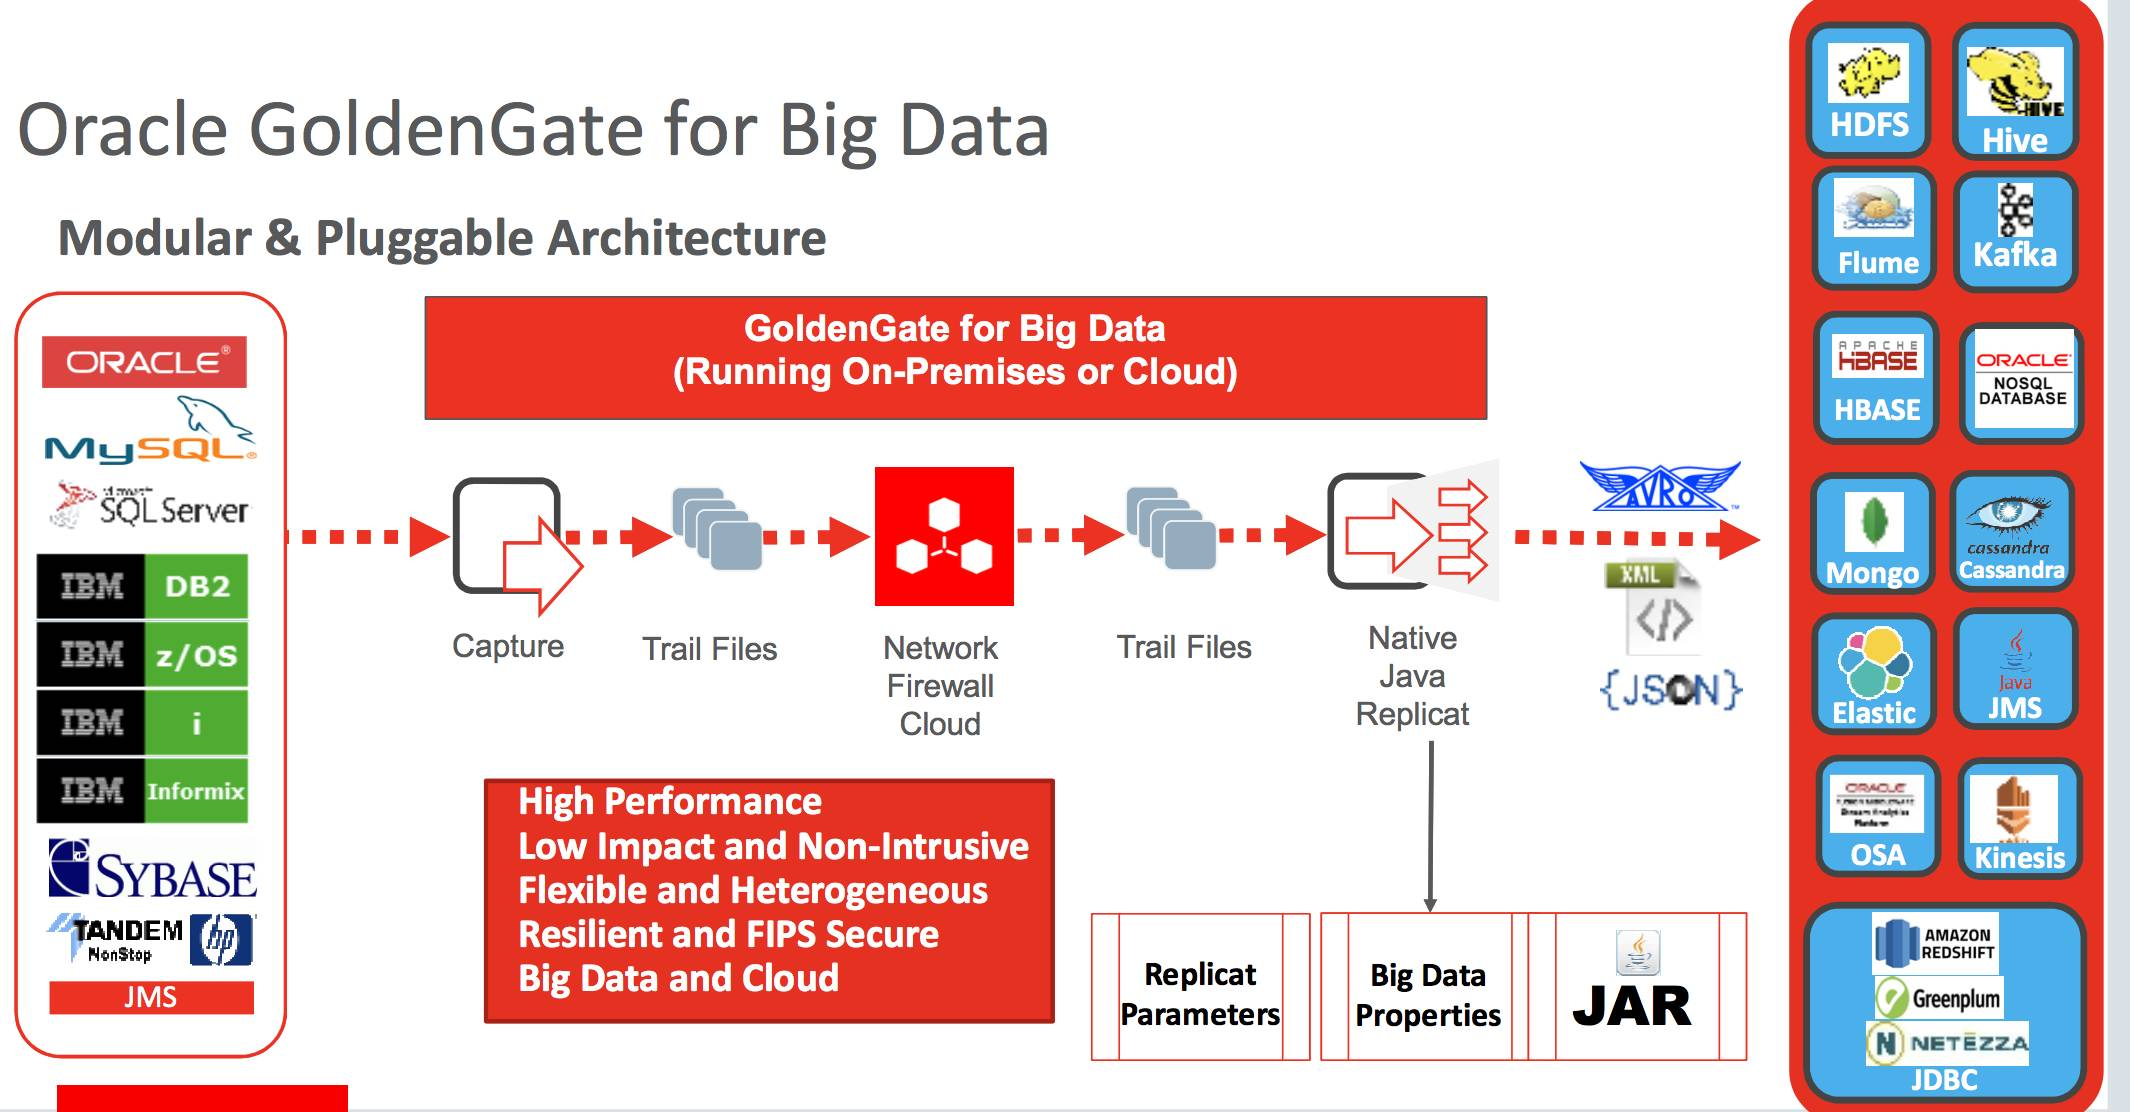 Oracle GoldenGate for Big Data